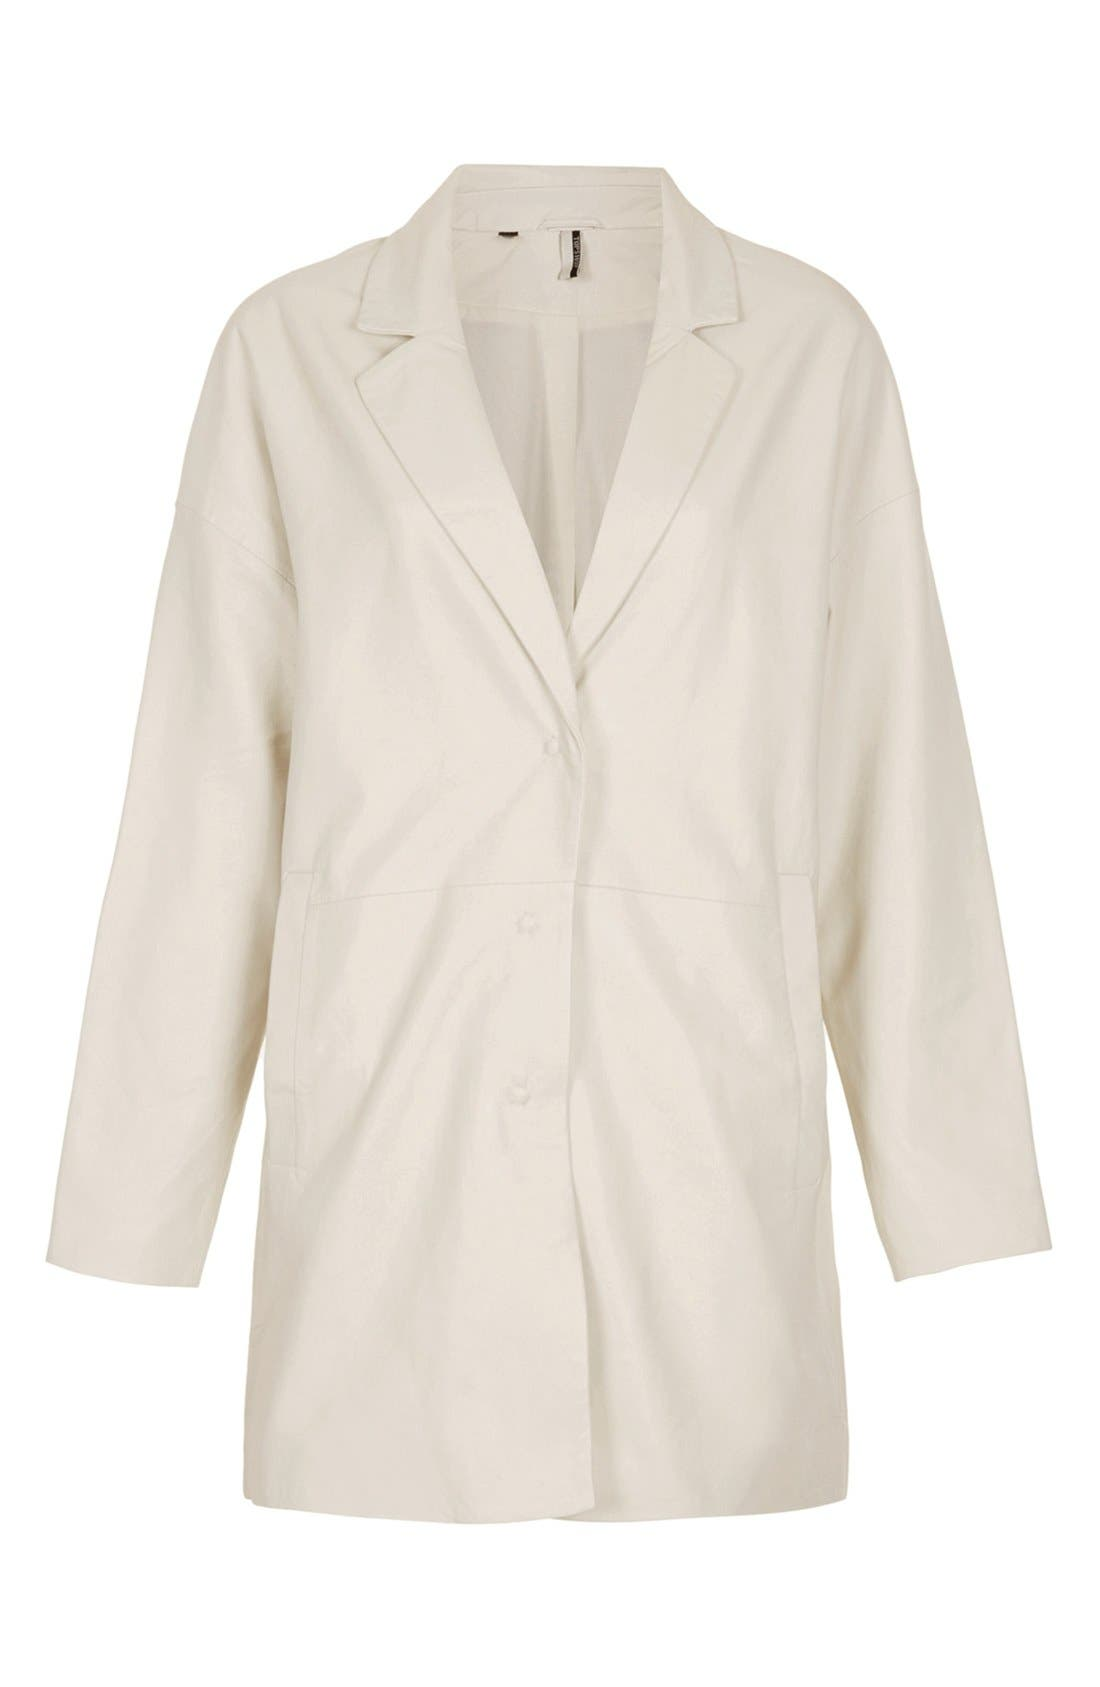 Main Image - Topshop 'The Collection Starring Kate Bosworth' Leather Coat